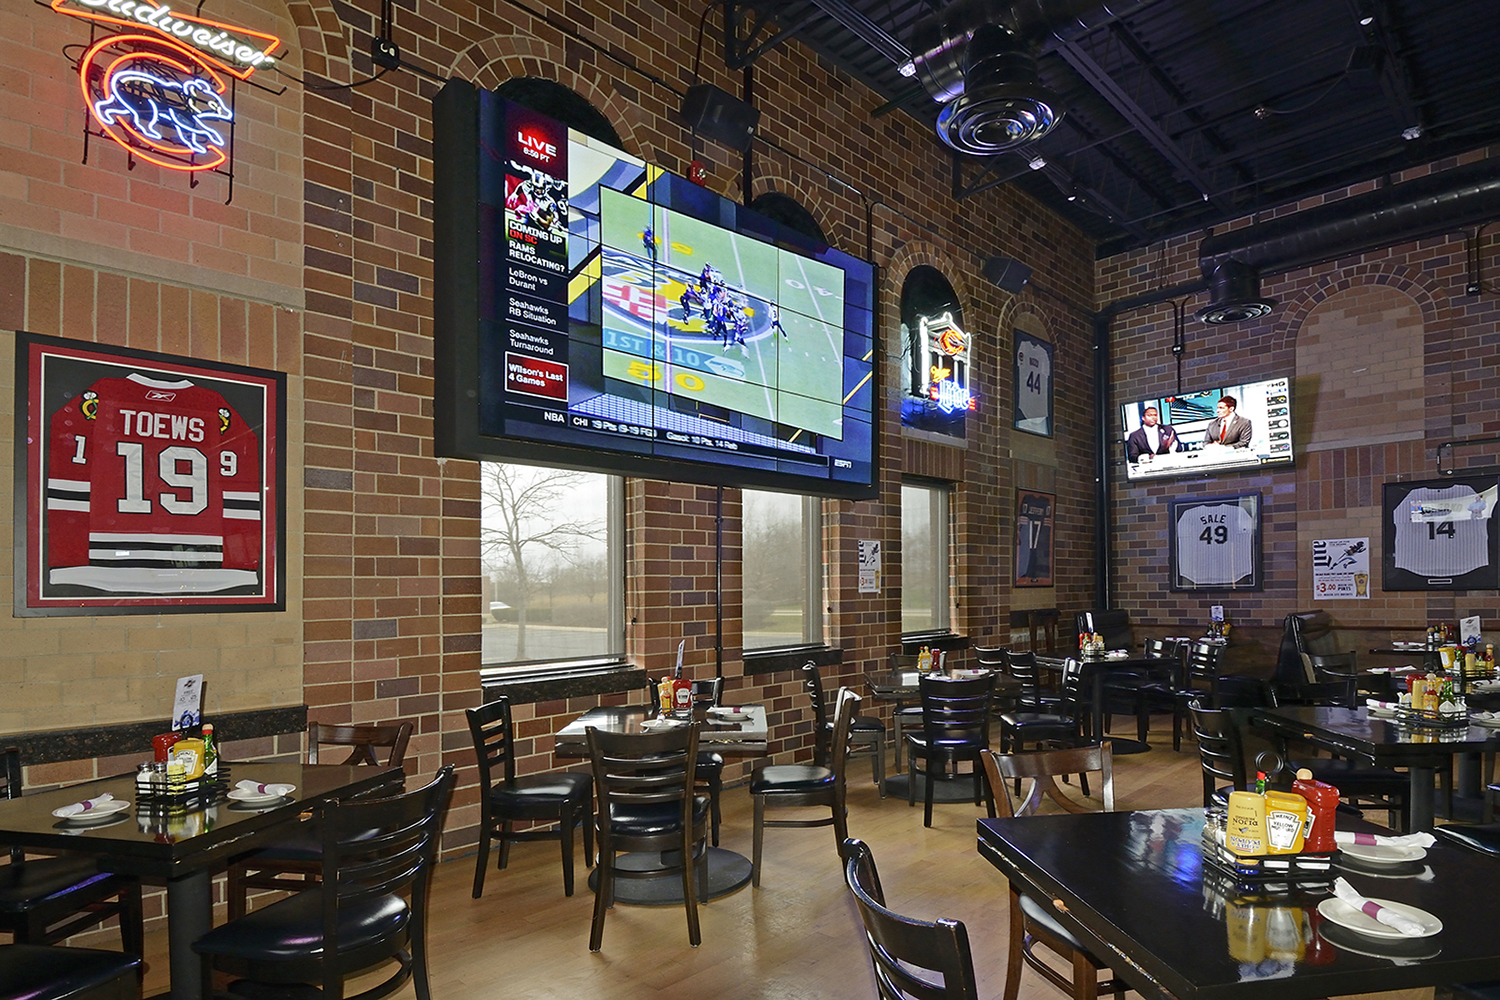 Seating area in Sports Bar with large televisions up on walls Architectural Photography